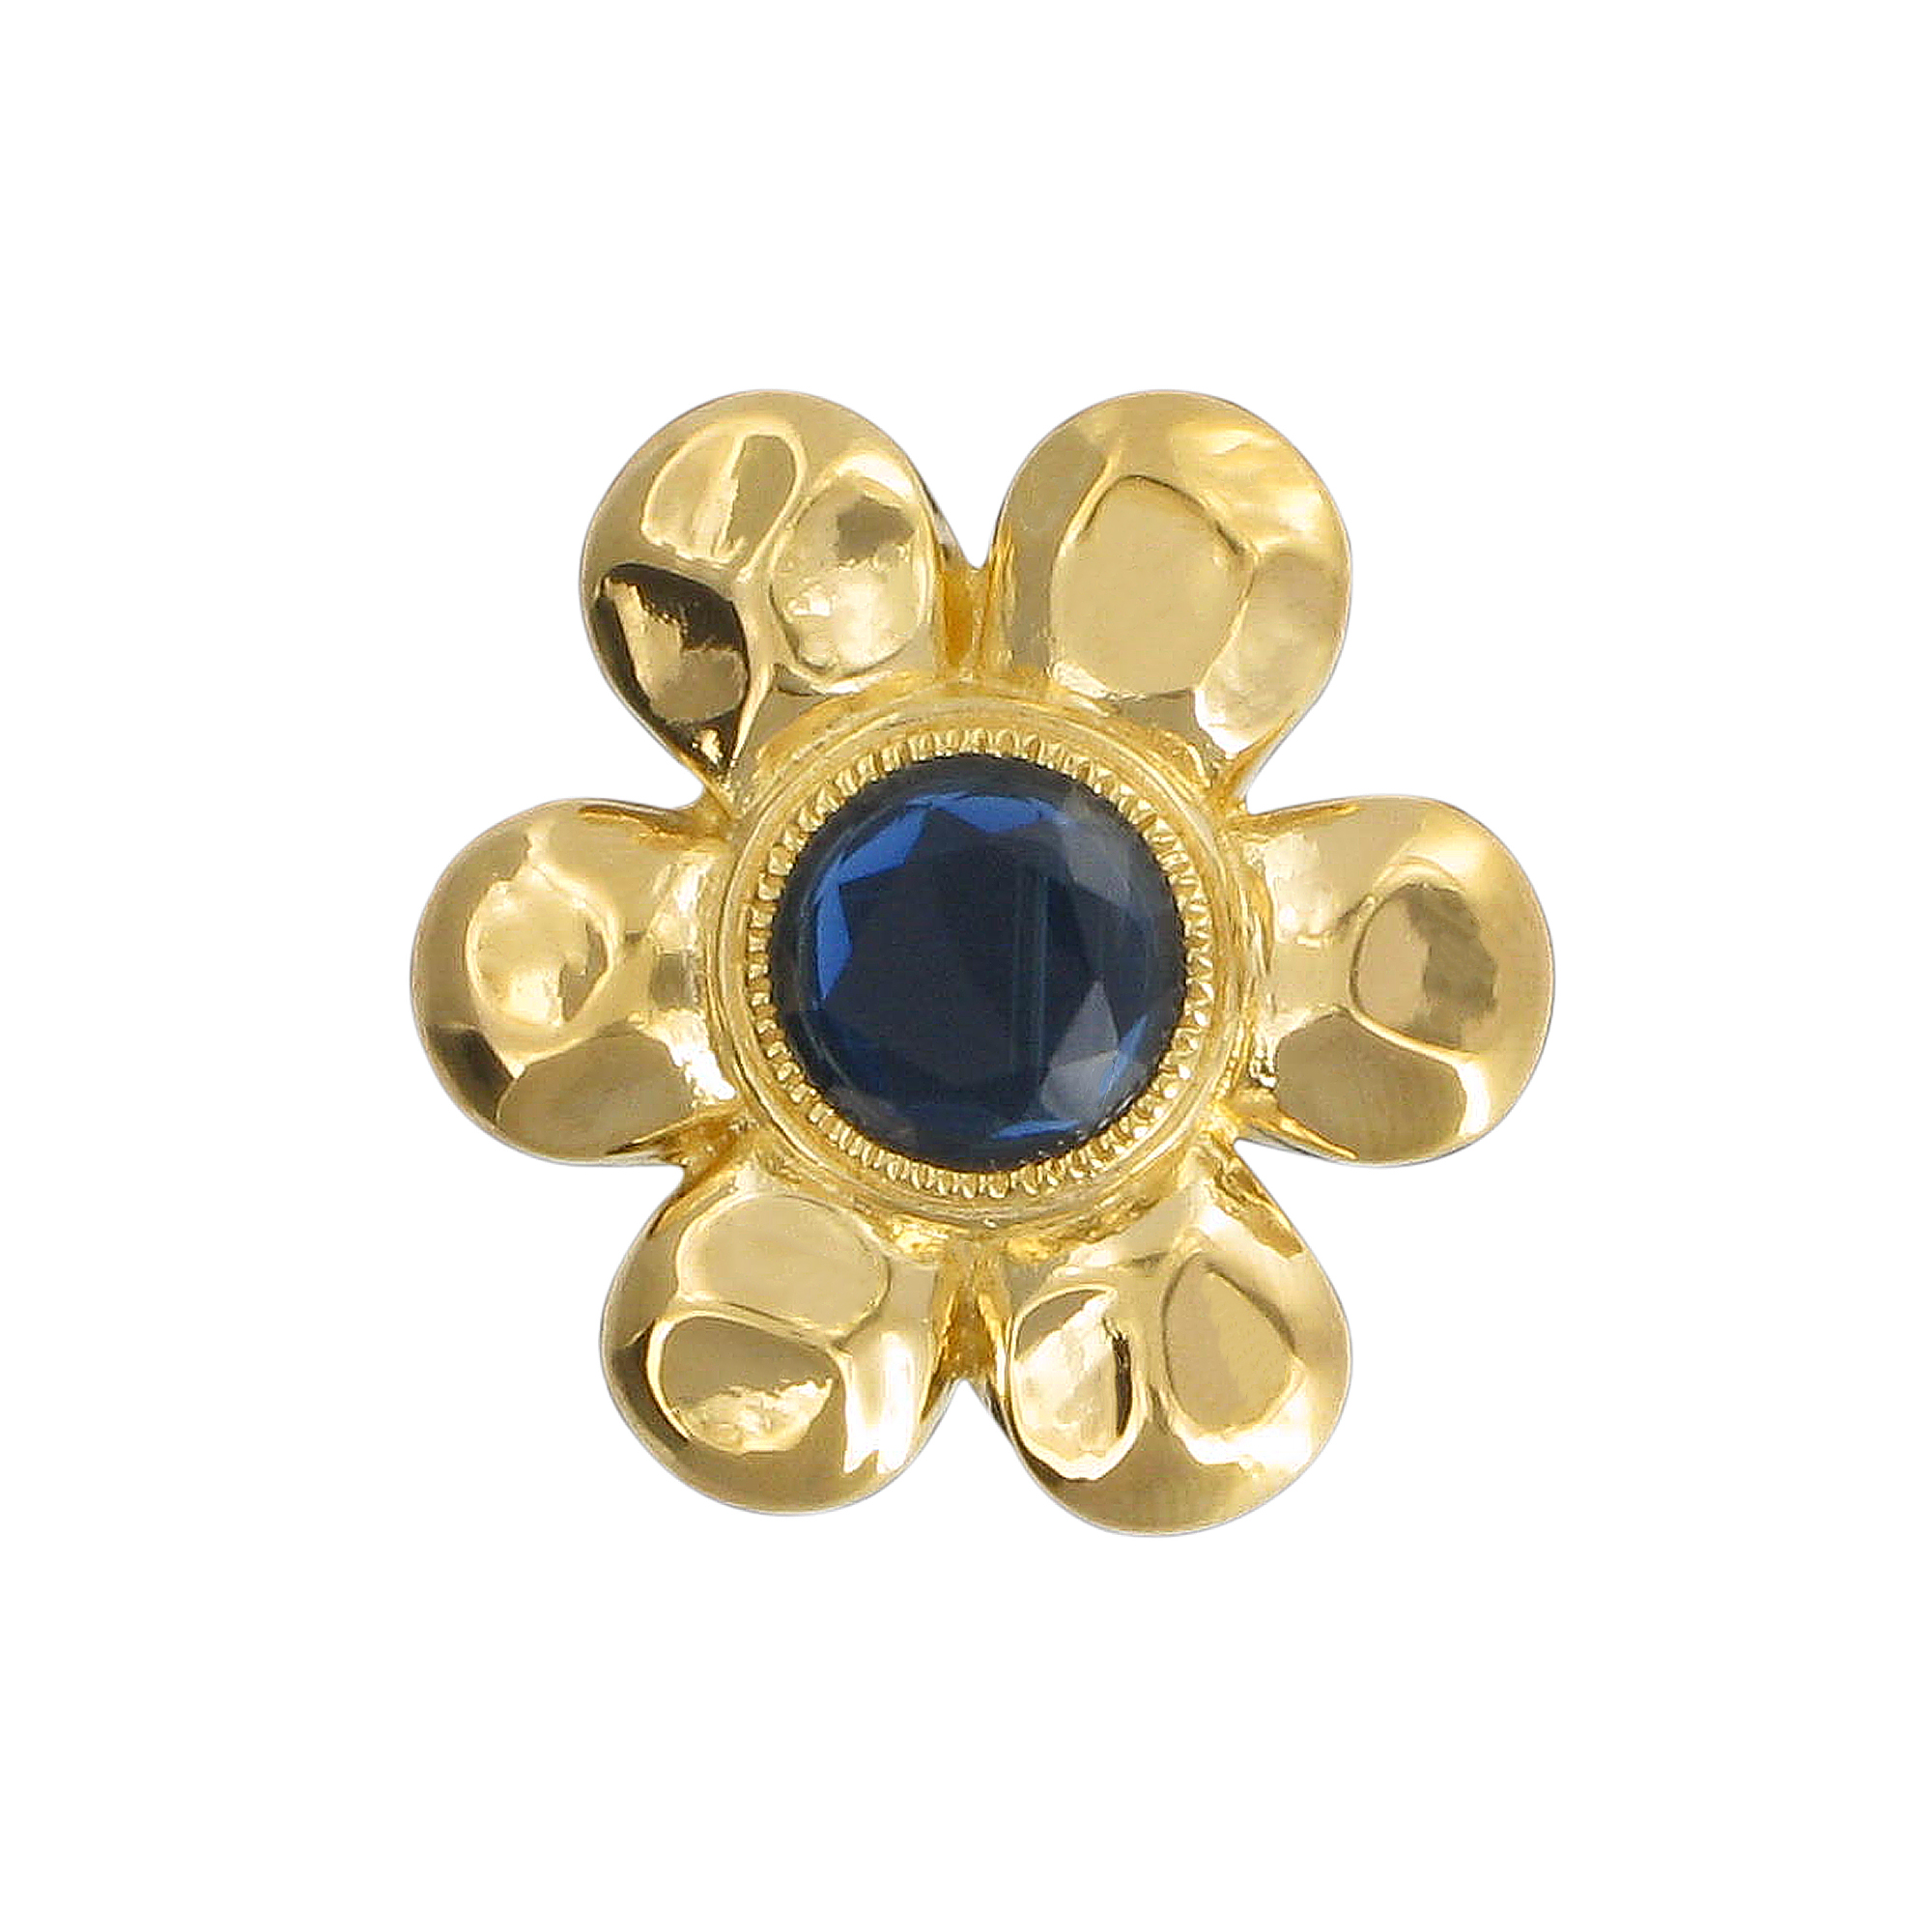 Temple flower brooch